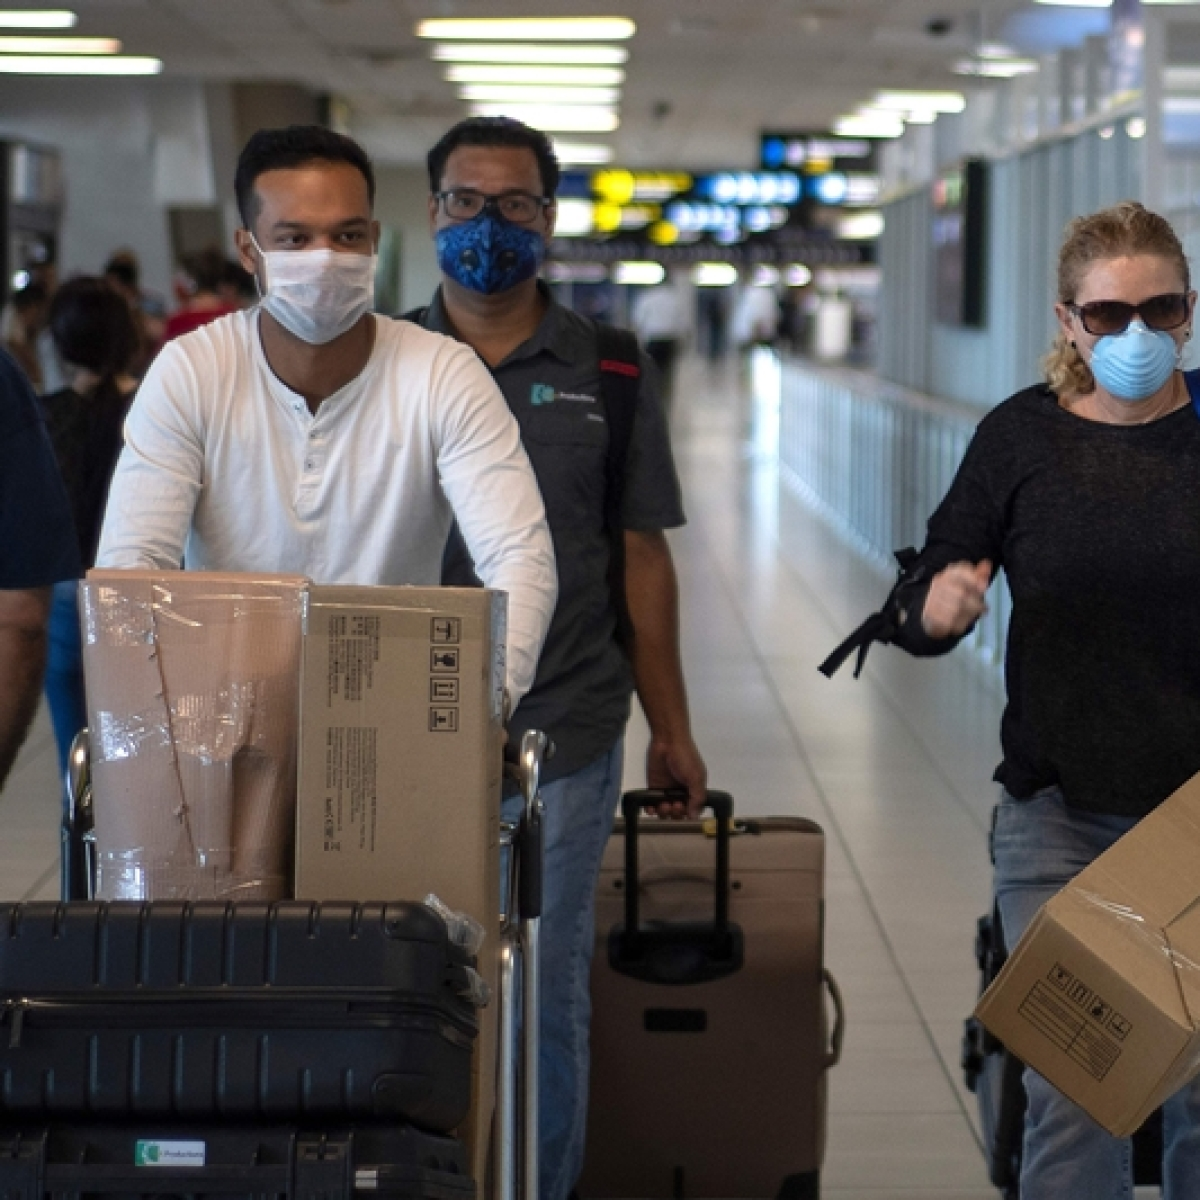 Coronavirus update: Govt bans entry of passengers from EU countries, UK, Turkey